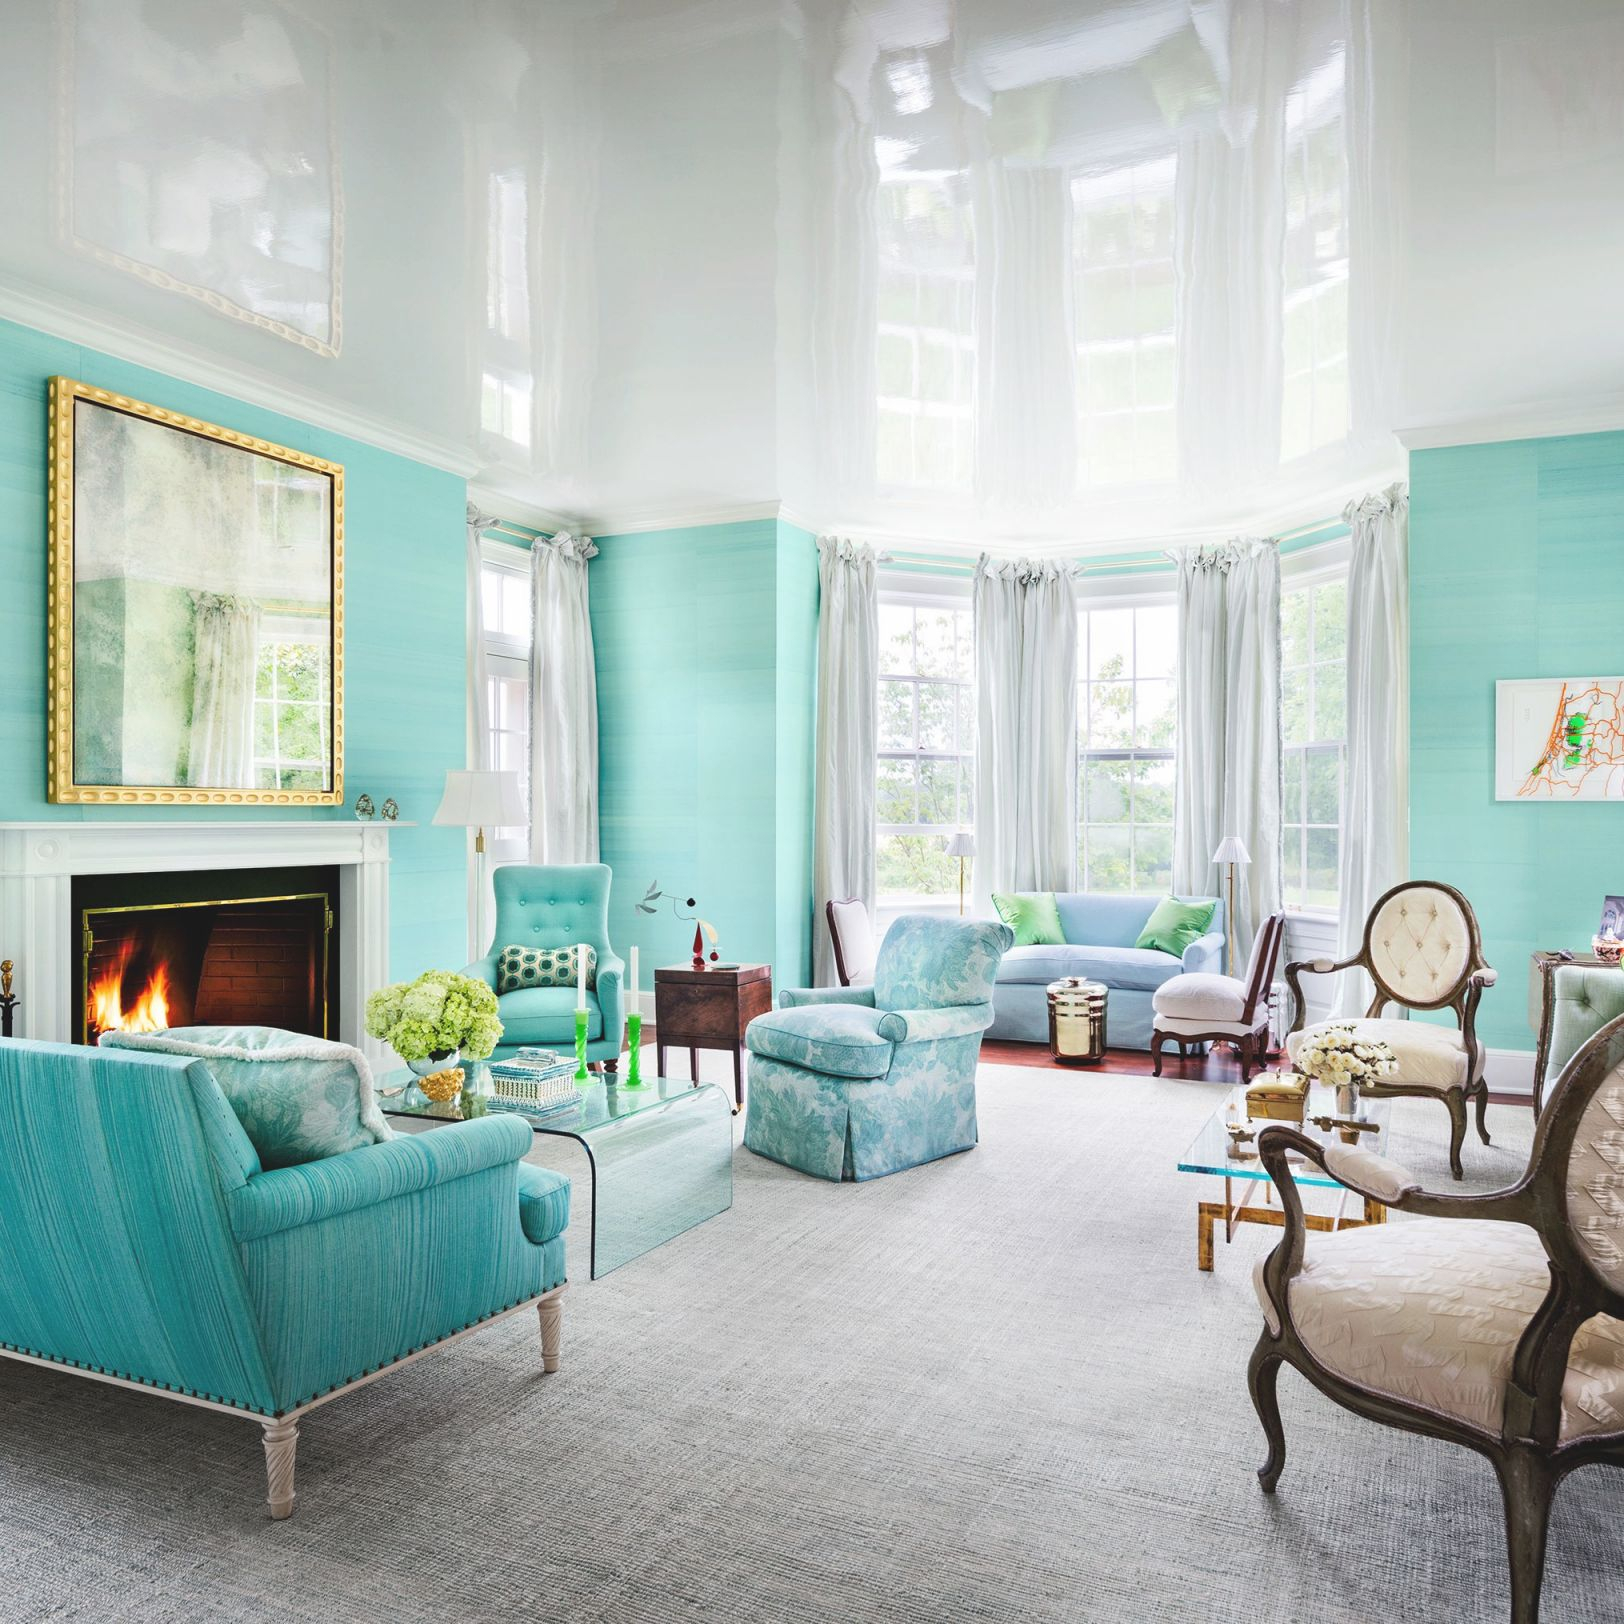 33 Spaces For Jewel-Tone Paint Color Inspiration throughout Elegant Turquoise Living Room Furniture